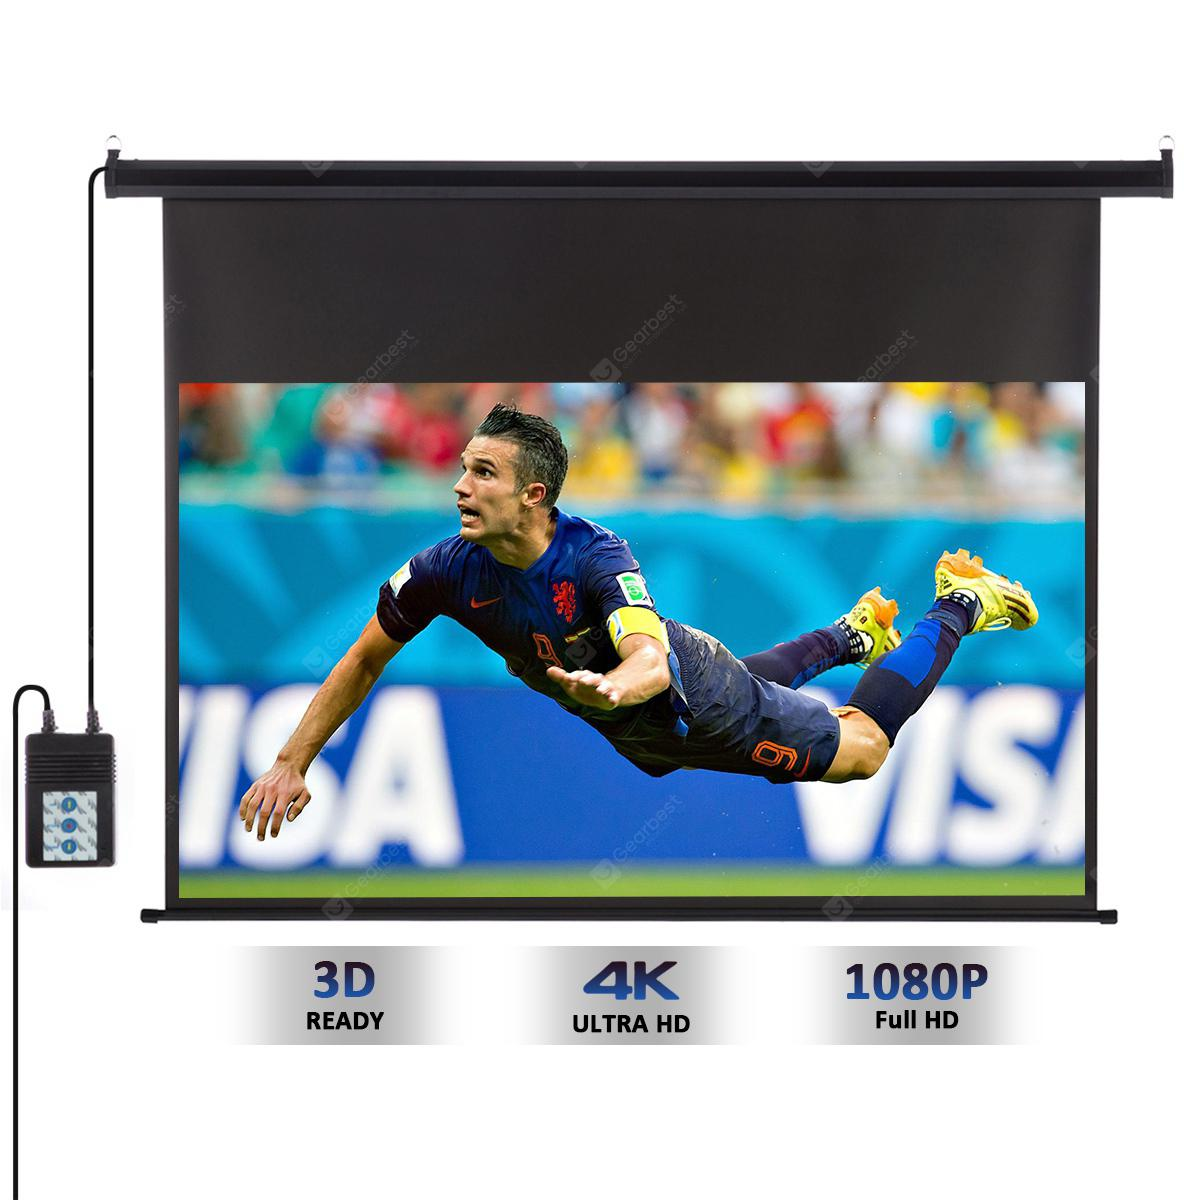 Excelvan 120-inch 16: 9 1.2 Gain Wall Ceiling Electric Motorized HD Projector Screen with Remote Control Up and Down for Home and Office - BLACK PSE